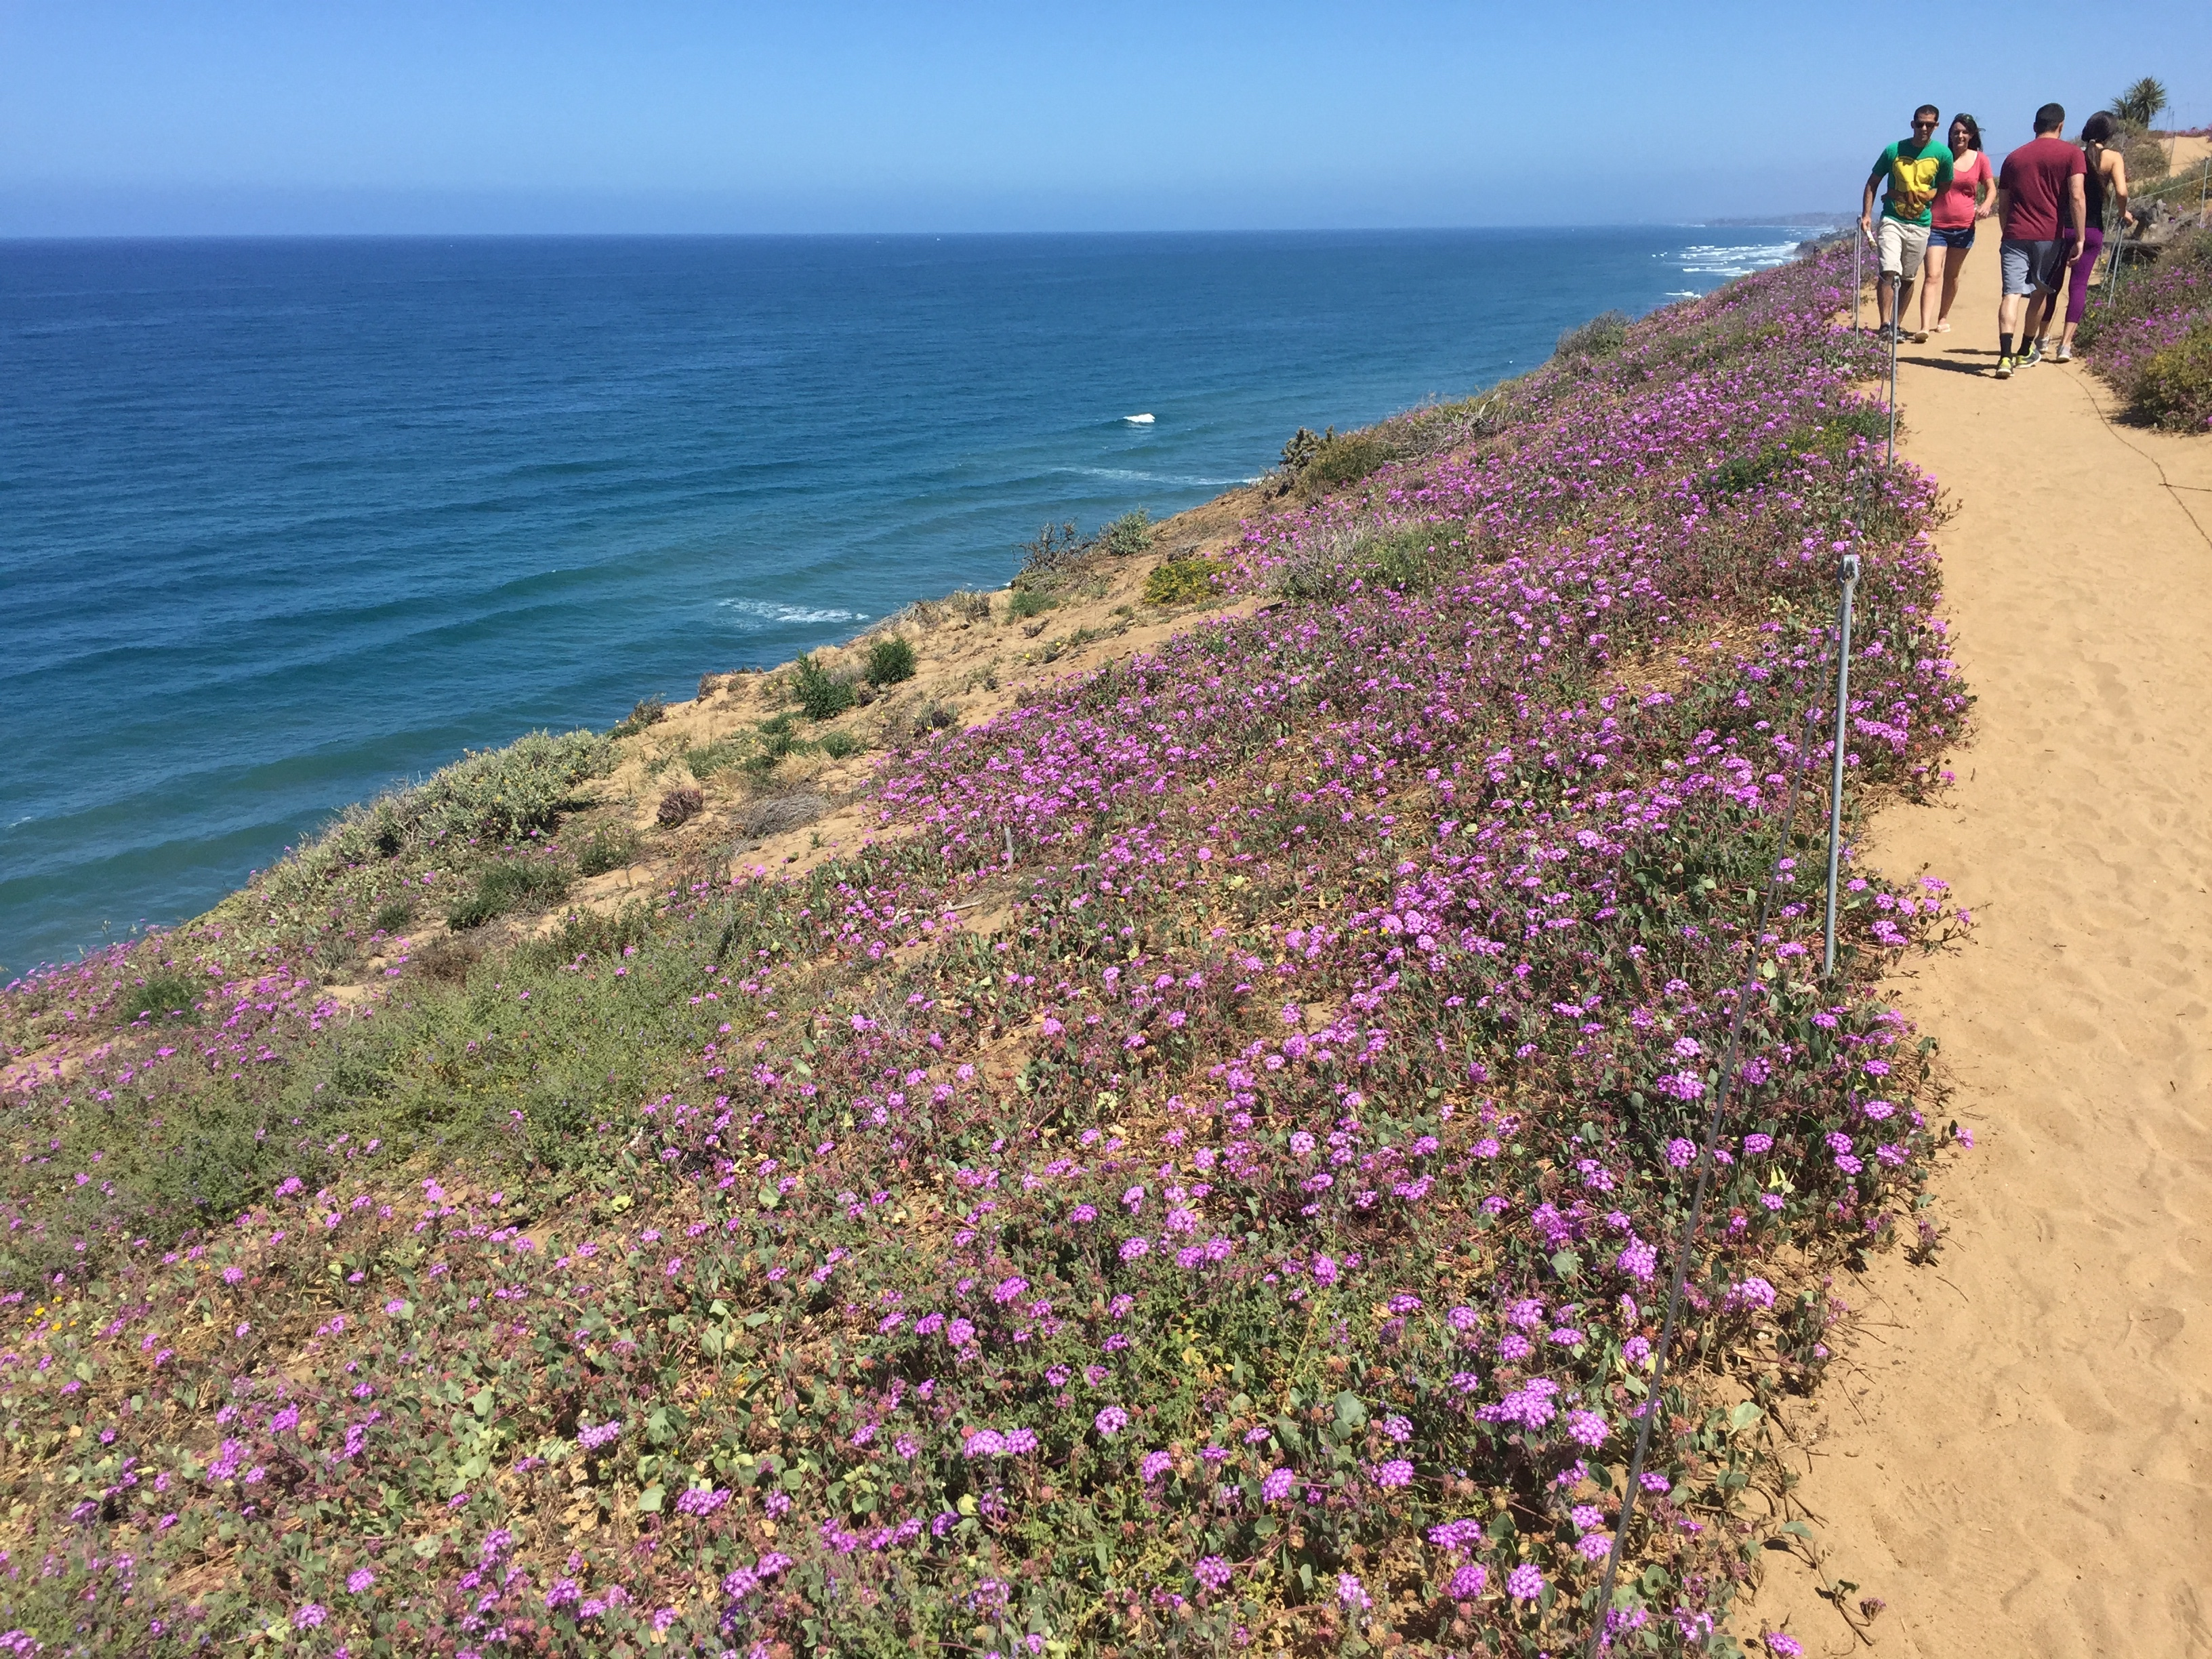 Purple flowers along a dirt pathway above the ocean.